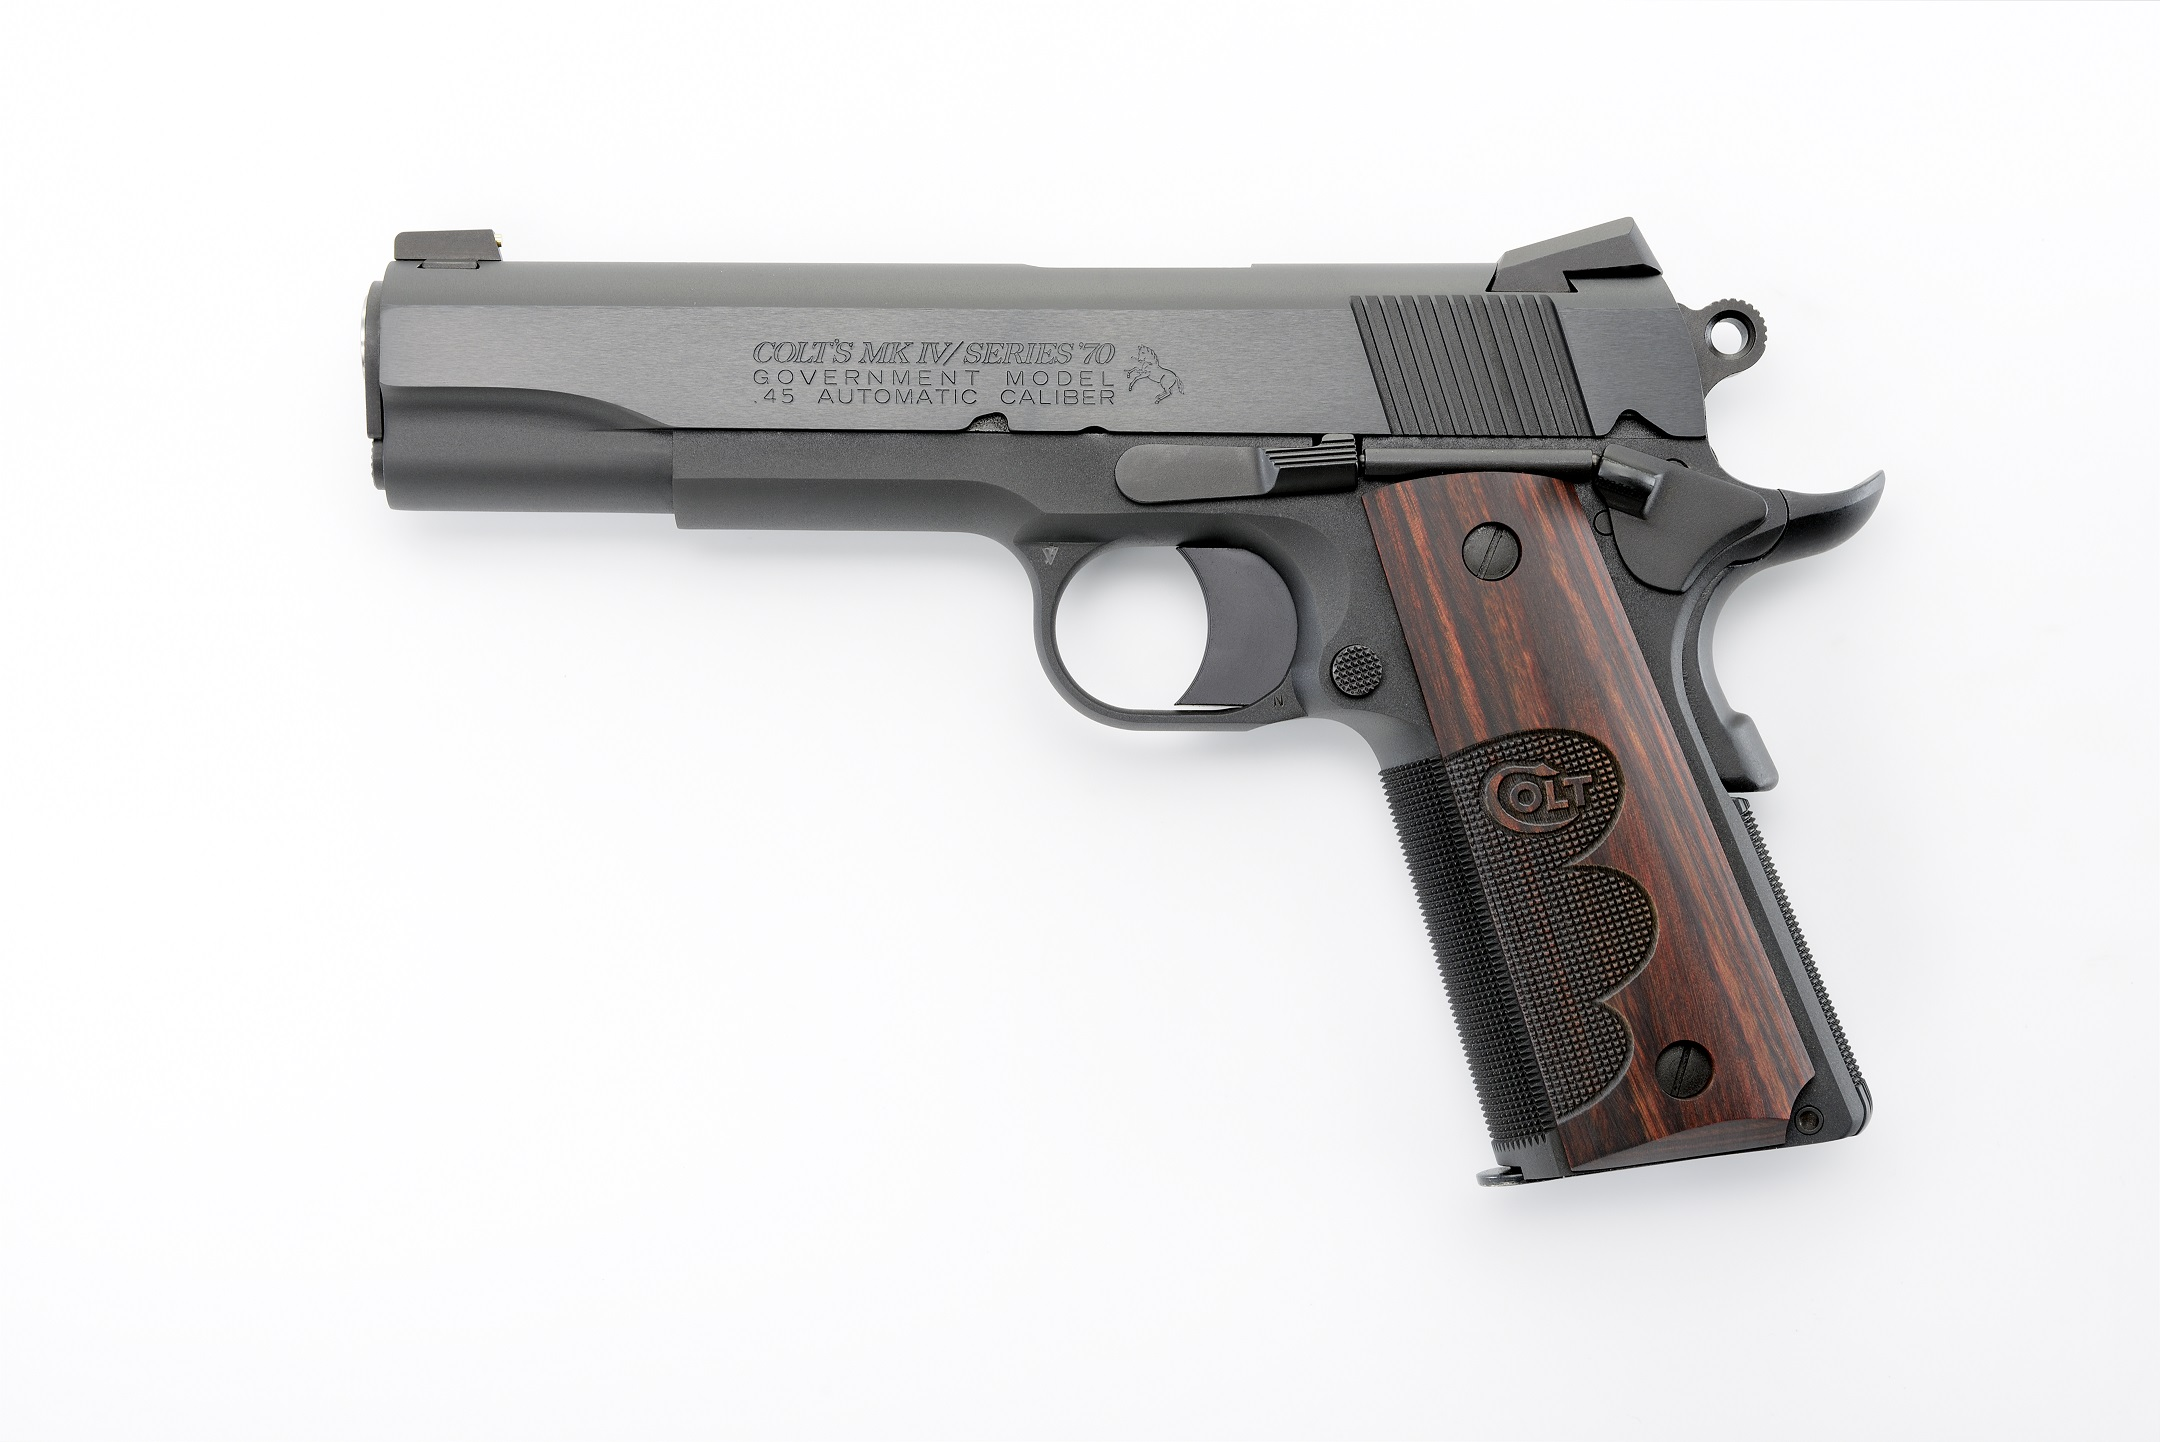 Colt Wiley Clapp Government 45 ACP